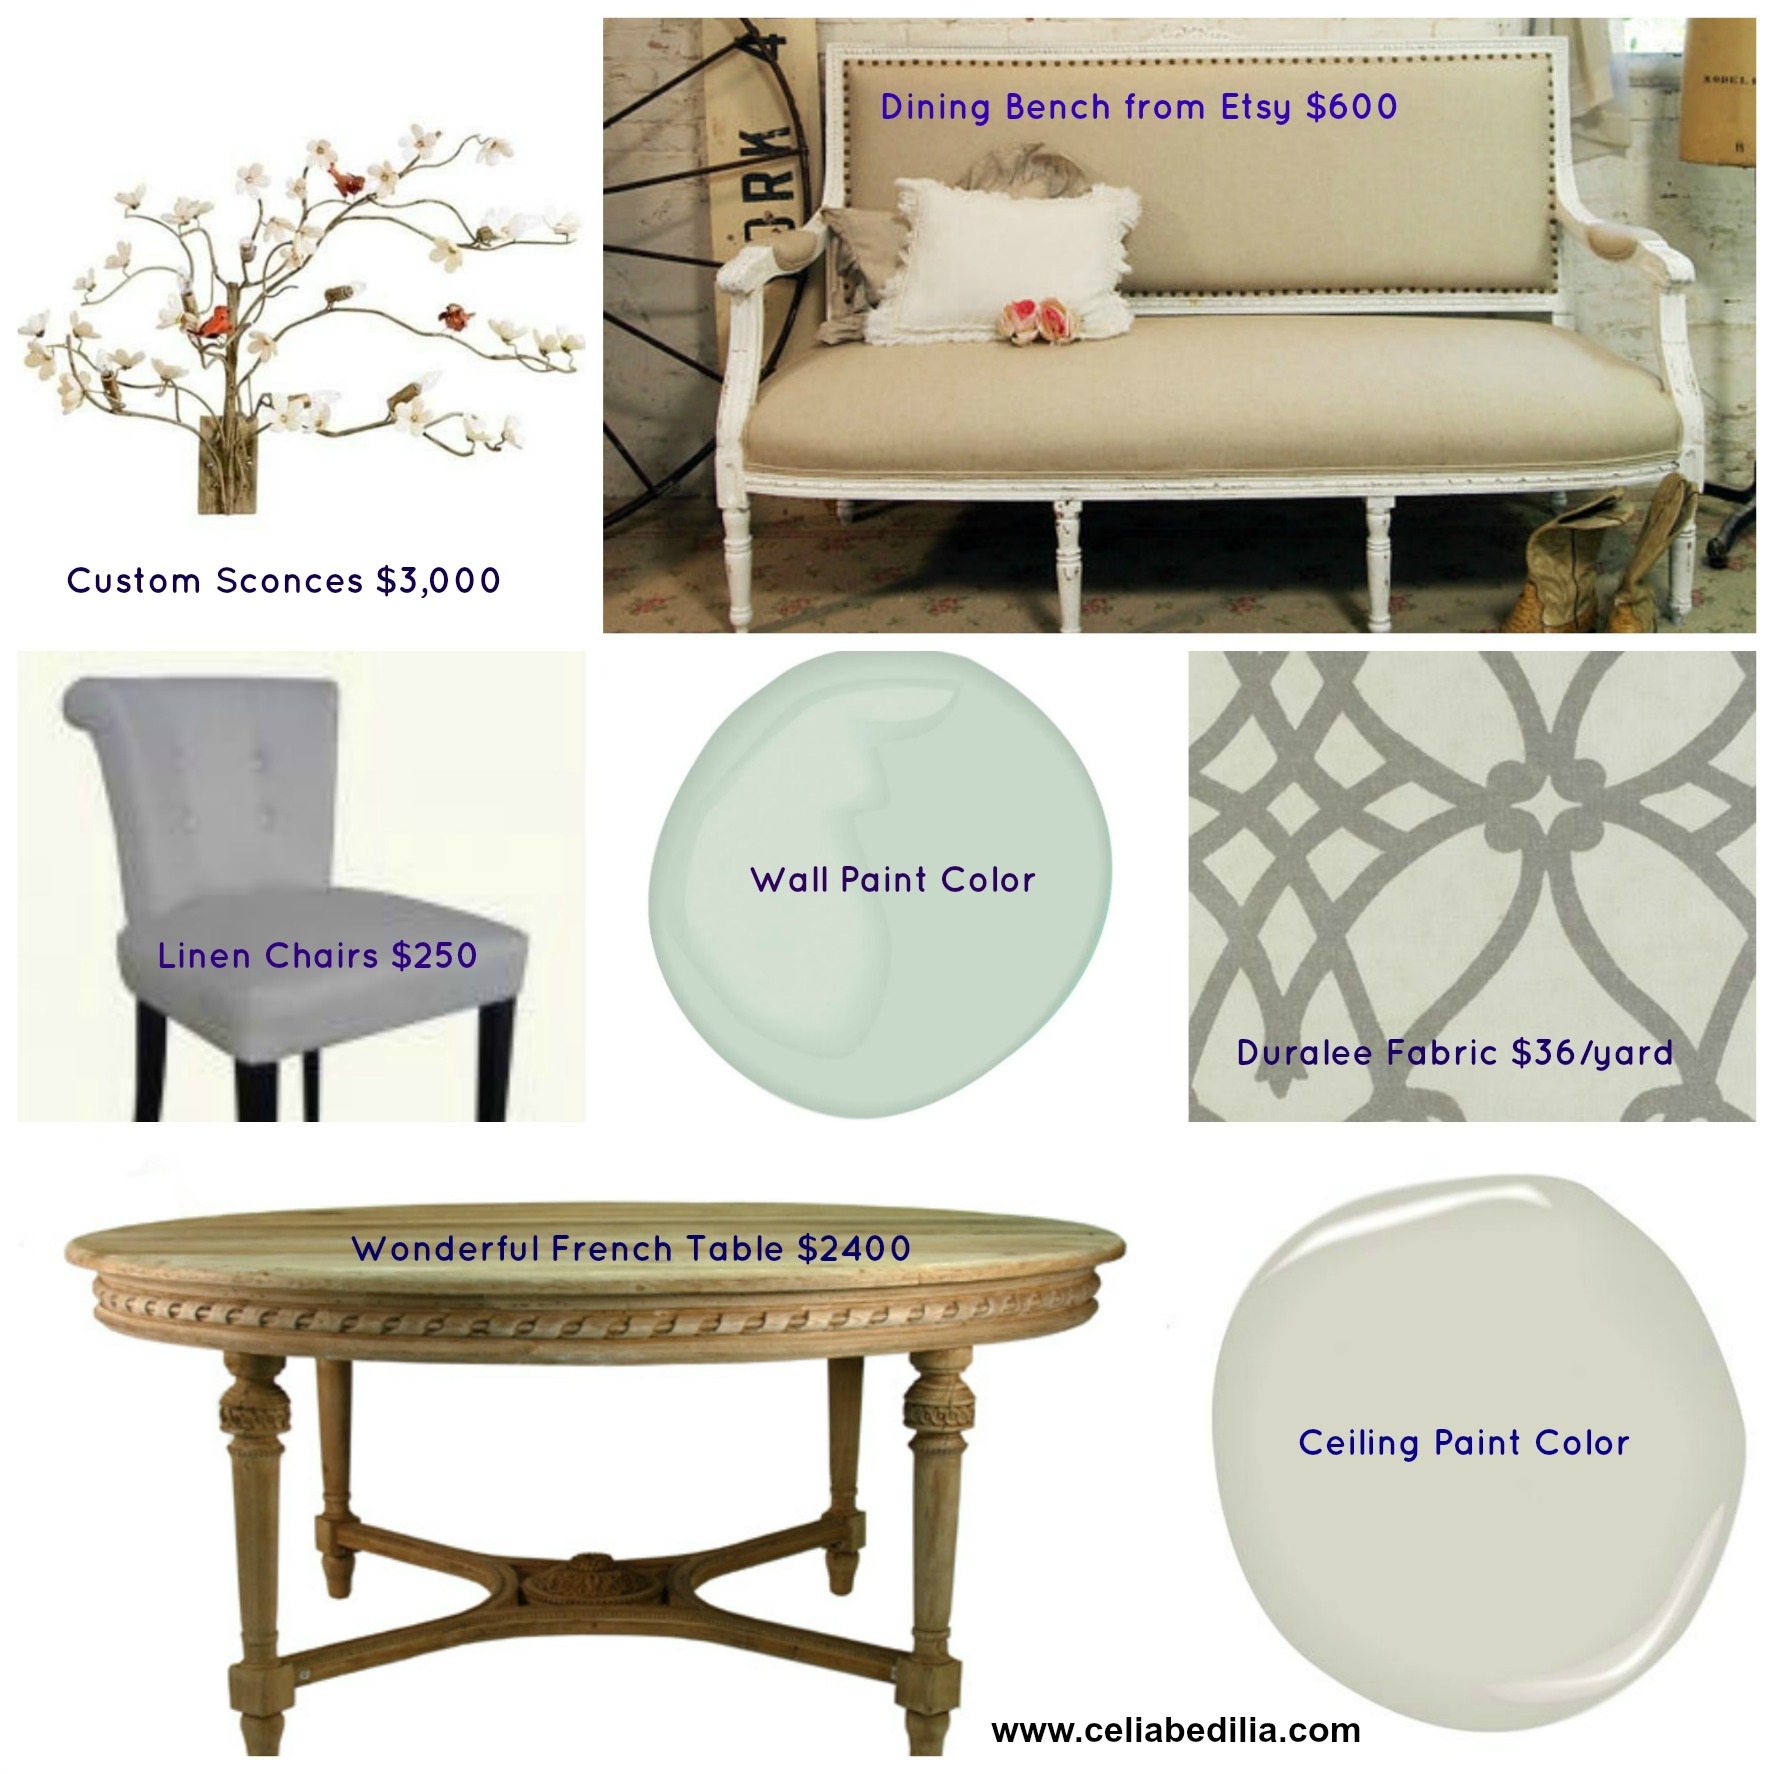 French Country Dining Table Plans Plans DIY How To Make